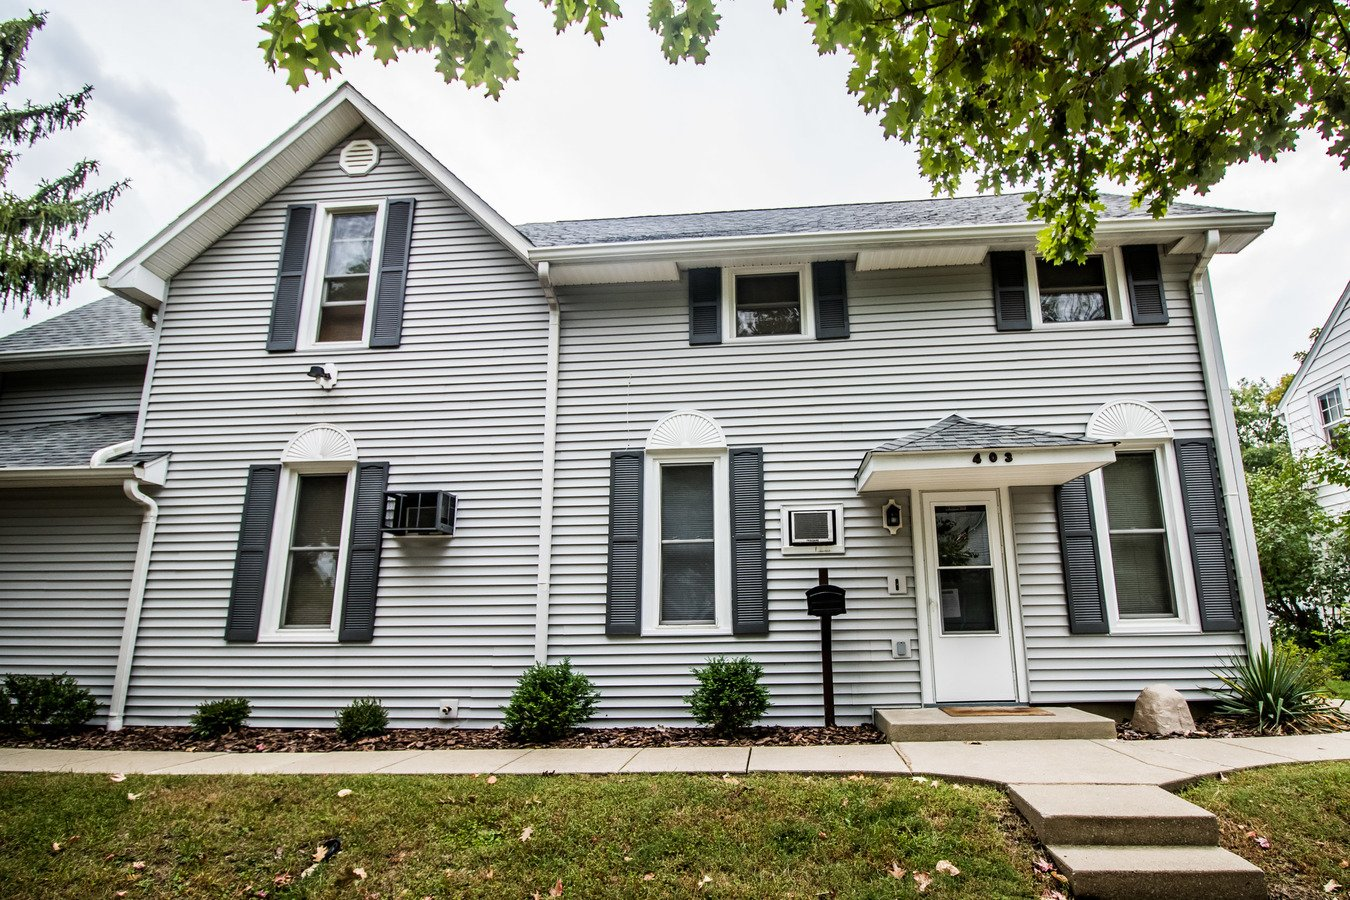 4 Bedrooms 1 Bathroom Apartment for rent at Liberty Corner in West Lafayette, IN